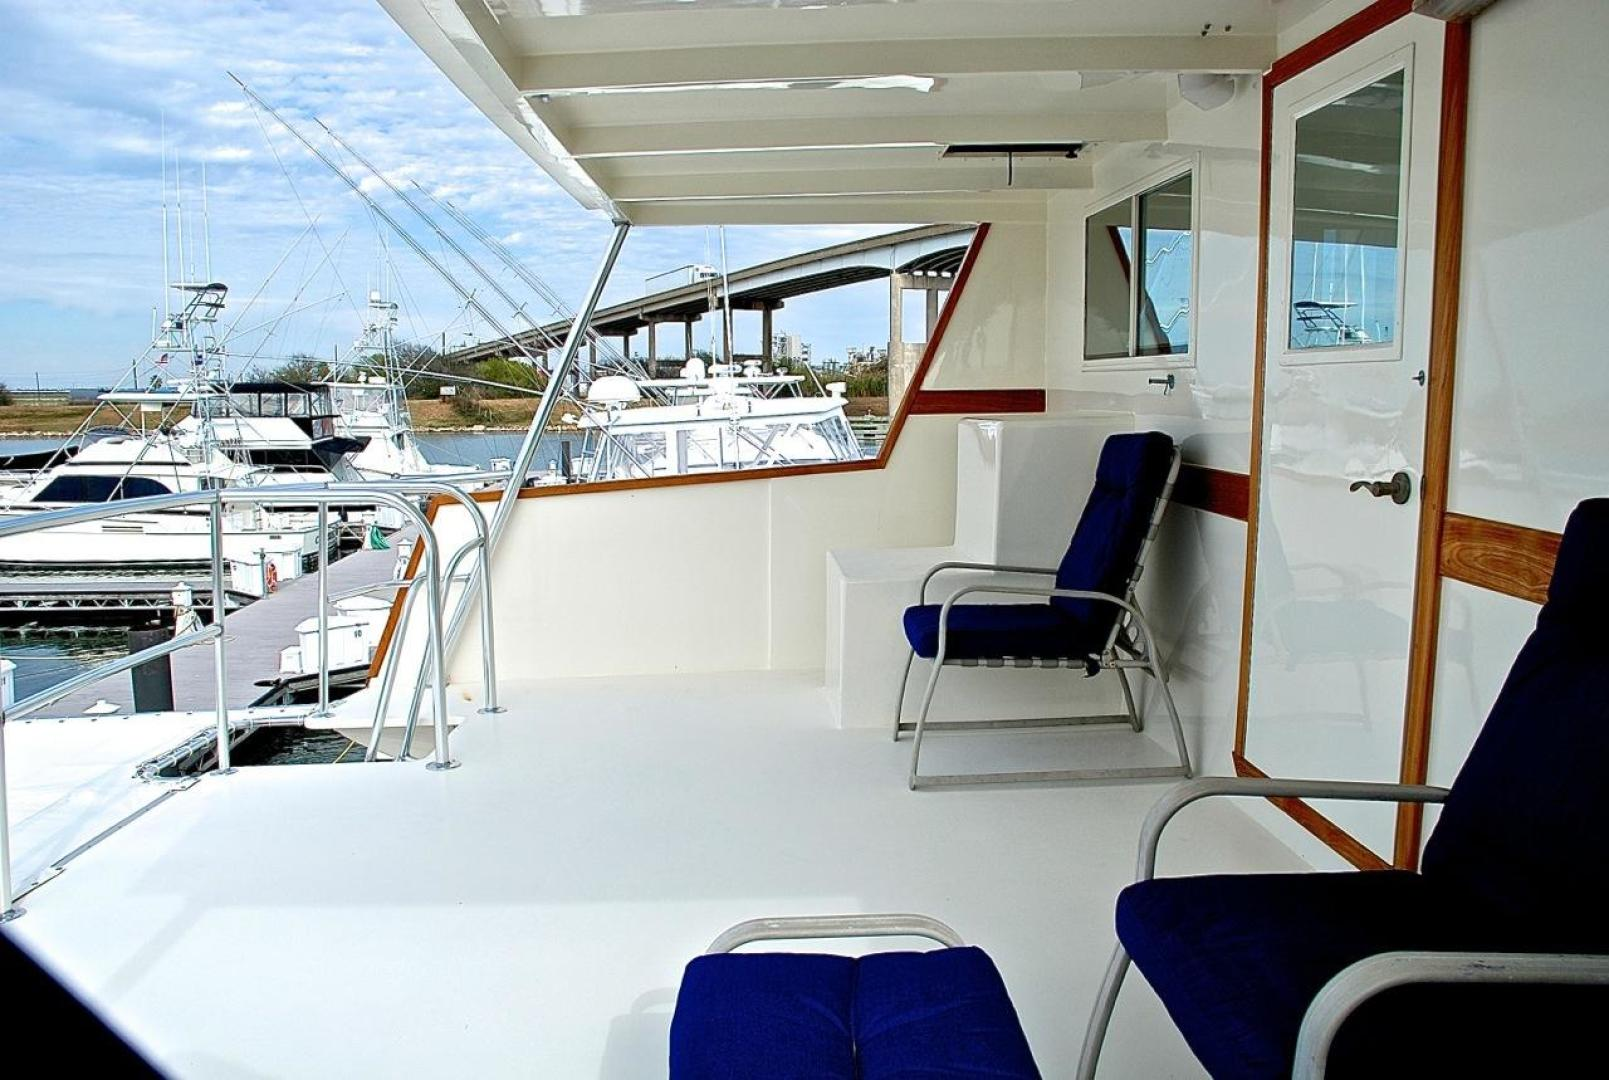 Infinity-Cockpit Motor Yacht 2001-Dont Matter Houston-Texas-United States-Upper Aft Deck View 2-1005565 | Thumbnail